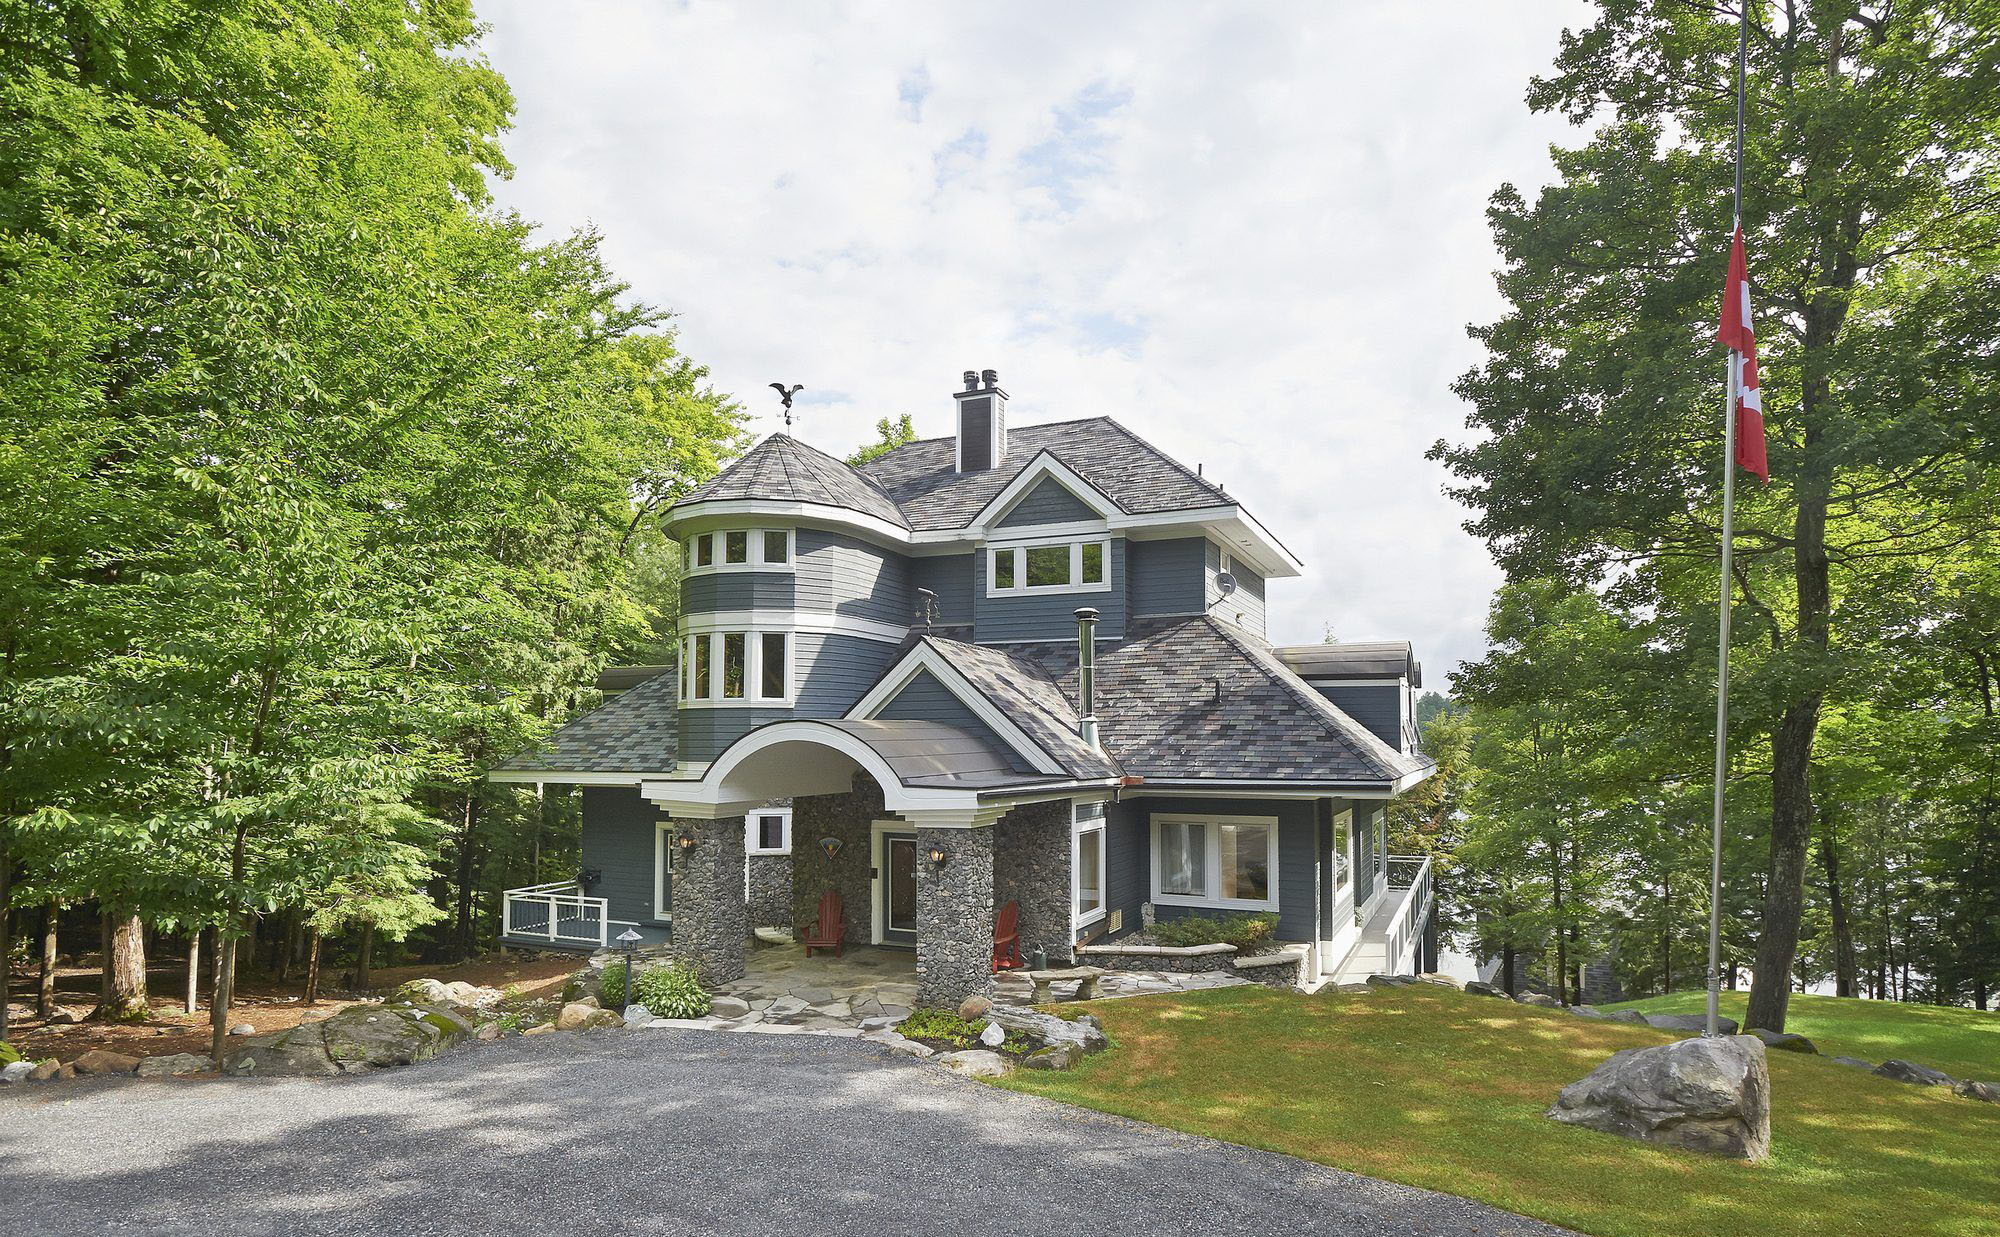 Beautiful custom waterfront blue home with an arched portico supported by stone columns.